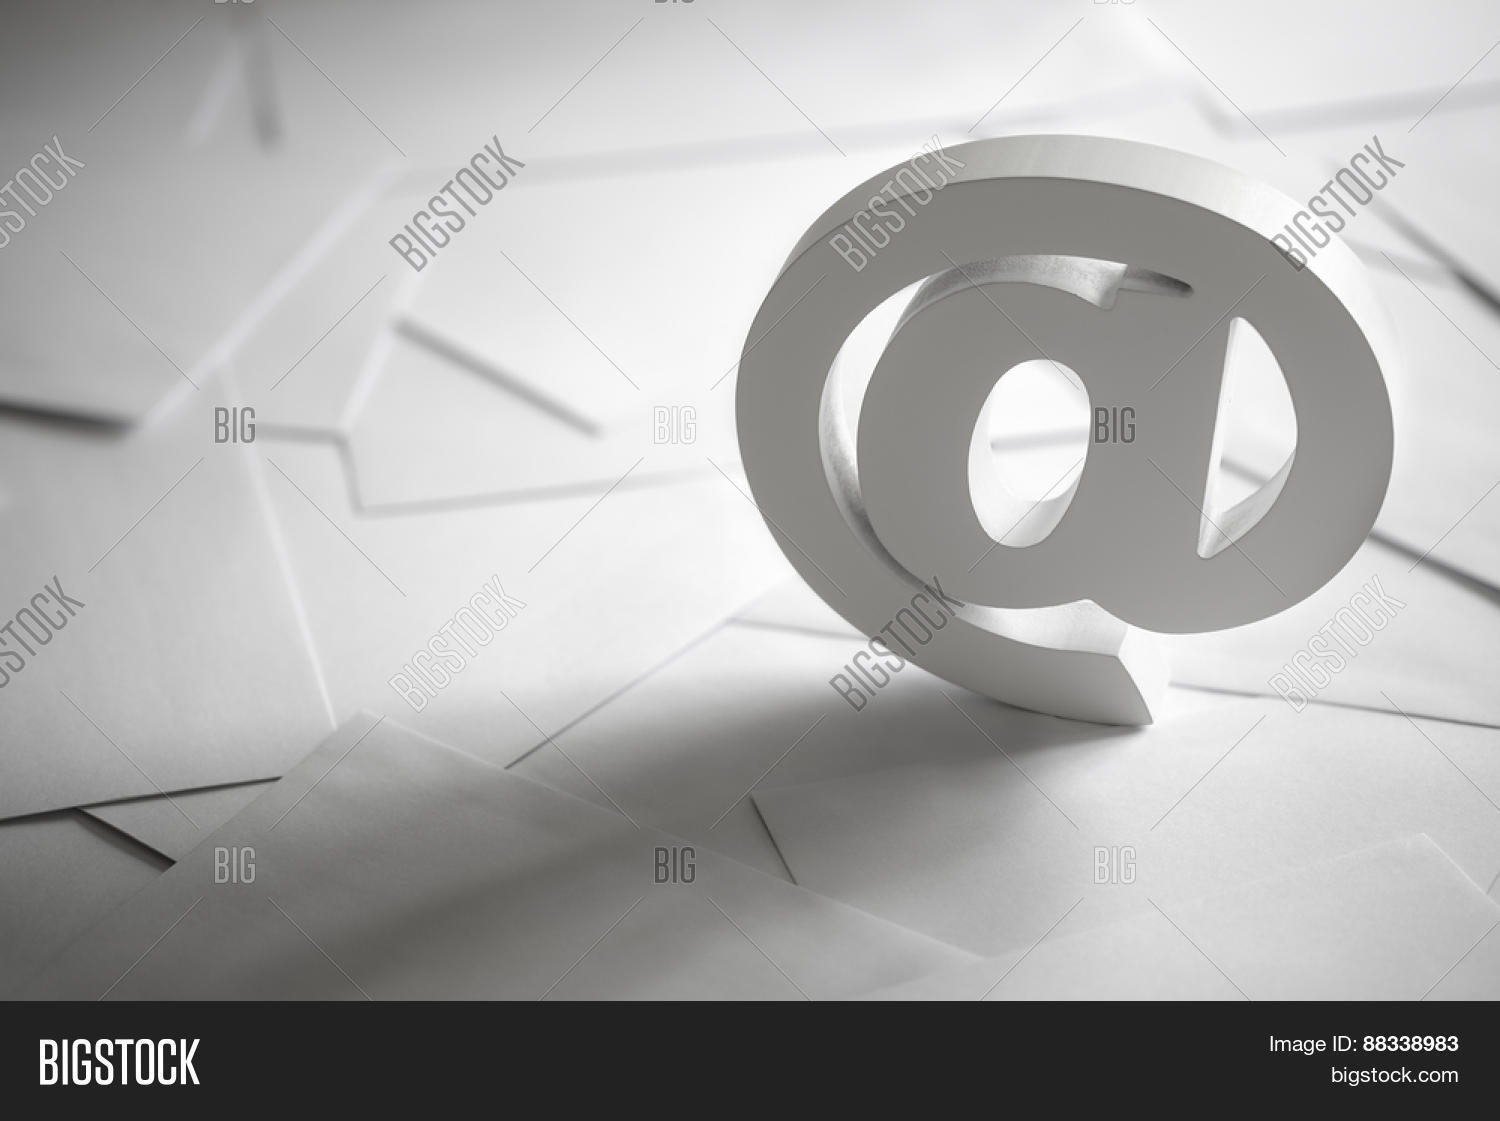 Email Symbol On Image Photo Free Trial Bigstock